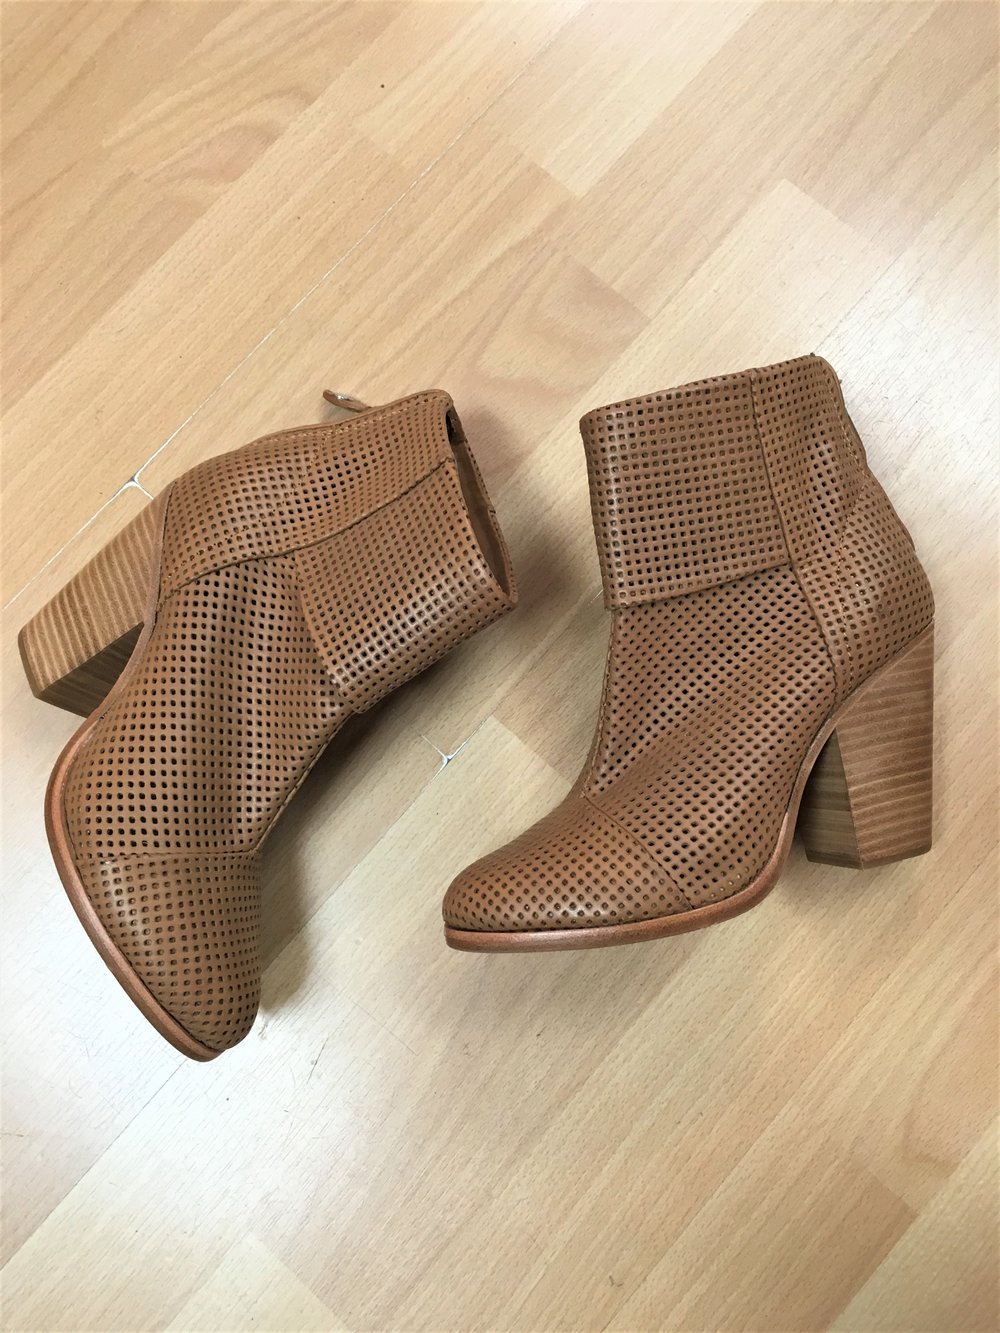 RAG & BONE - Newbury perforated leather ankle boots, size 7.5. $198